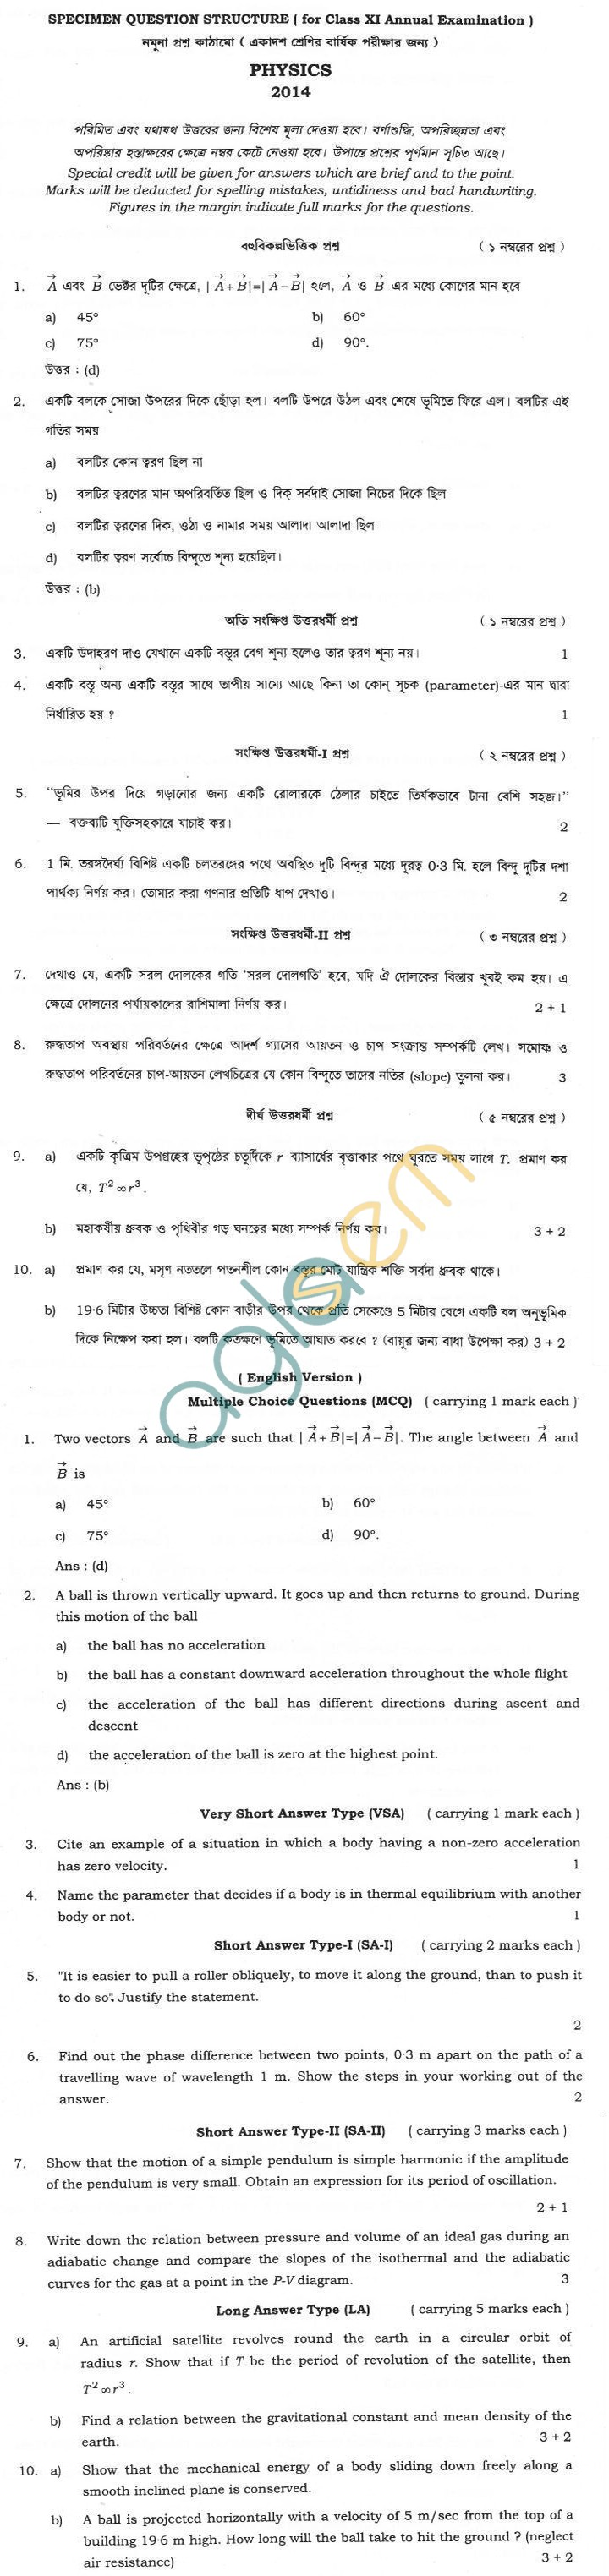 West Bengal Board Sample Question Paper for Class 11